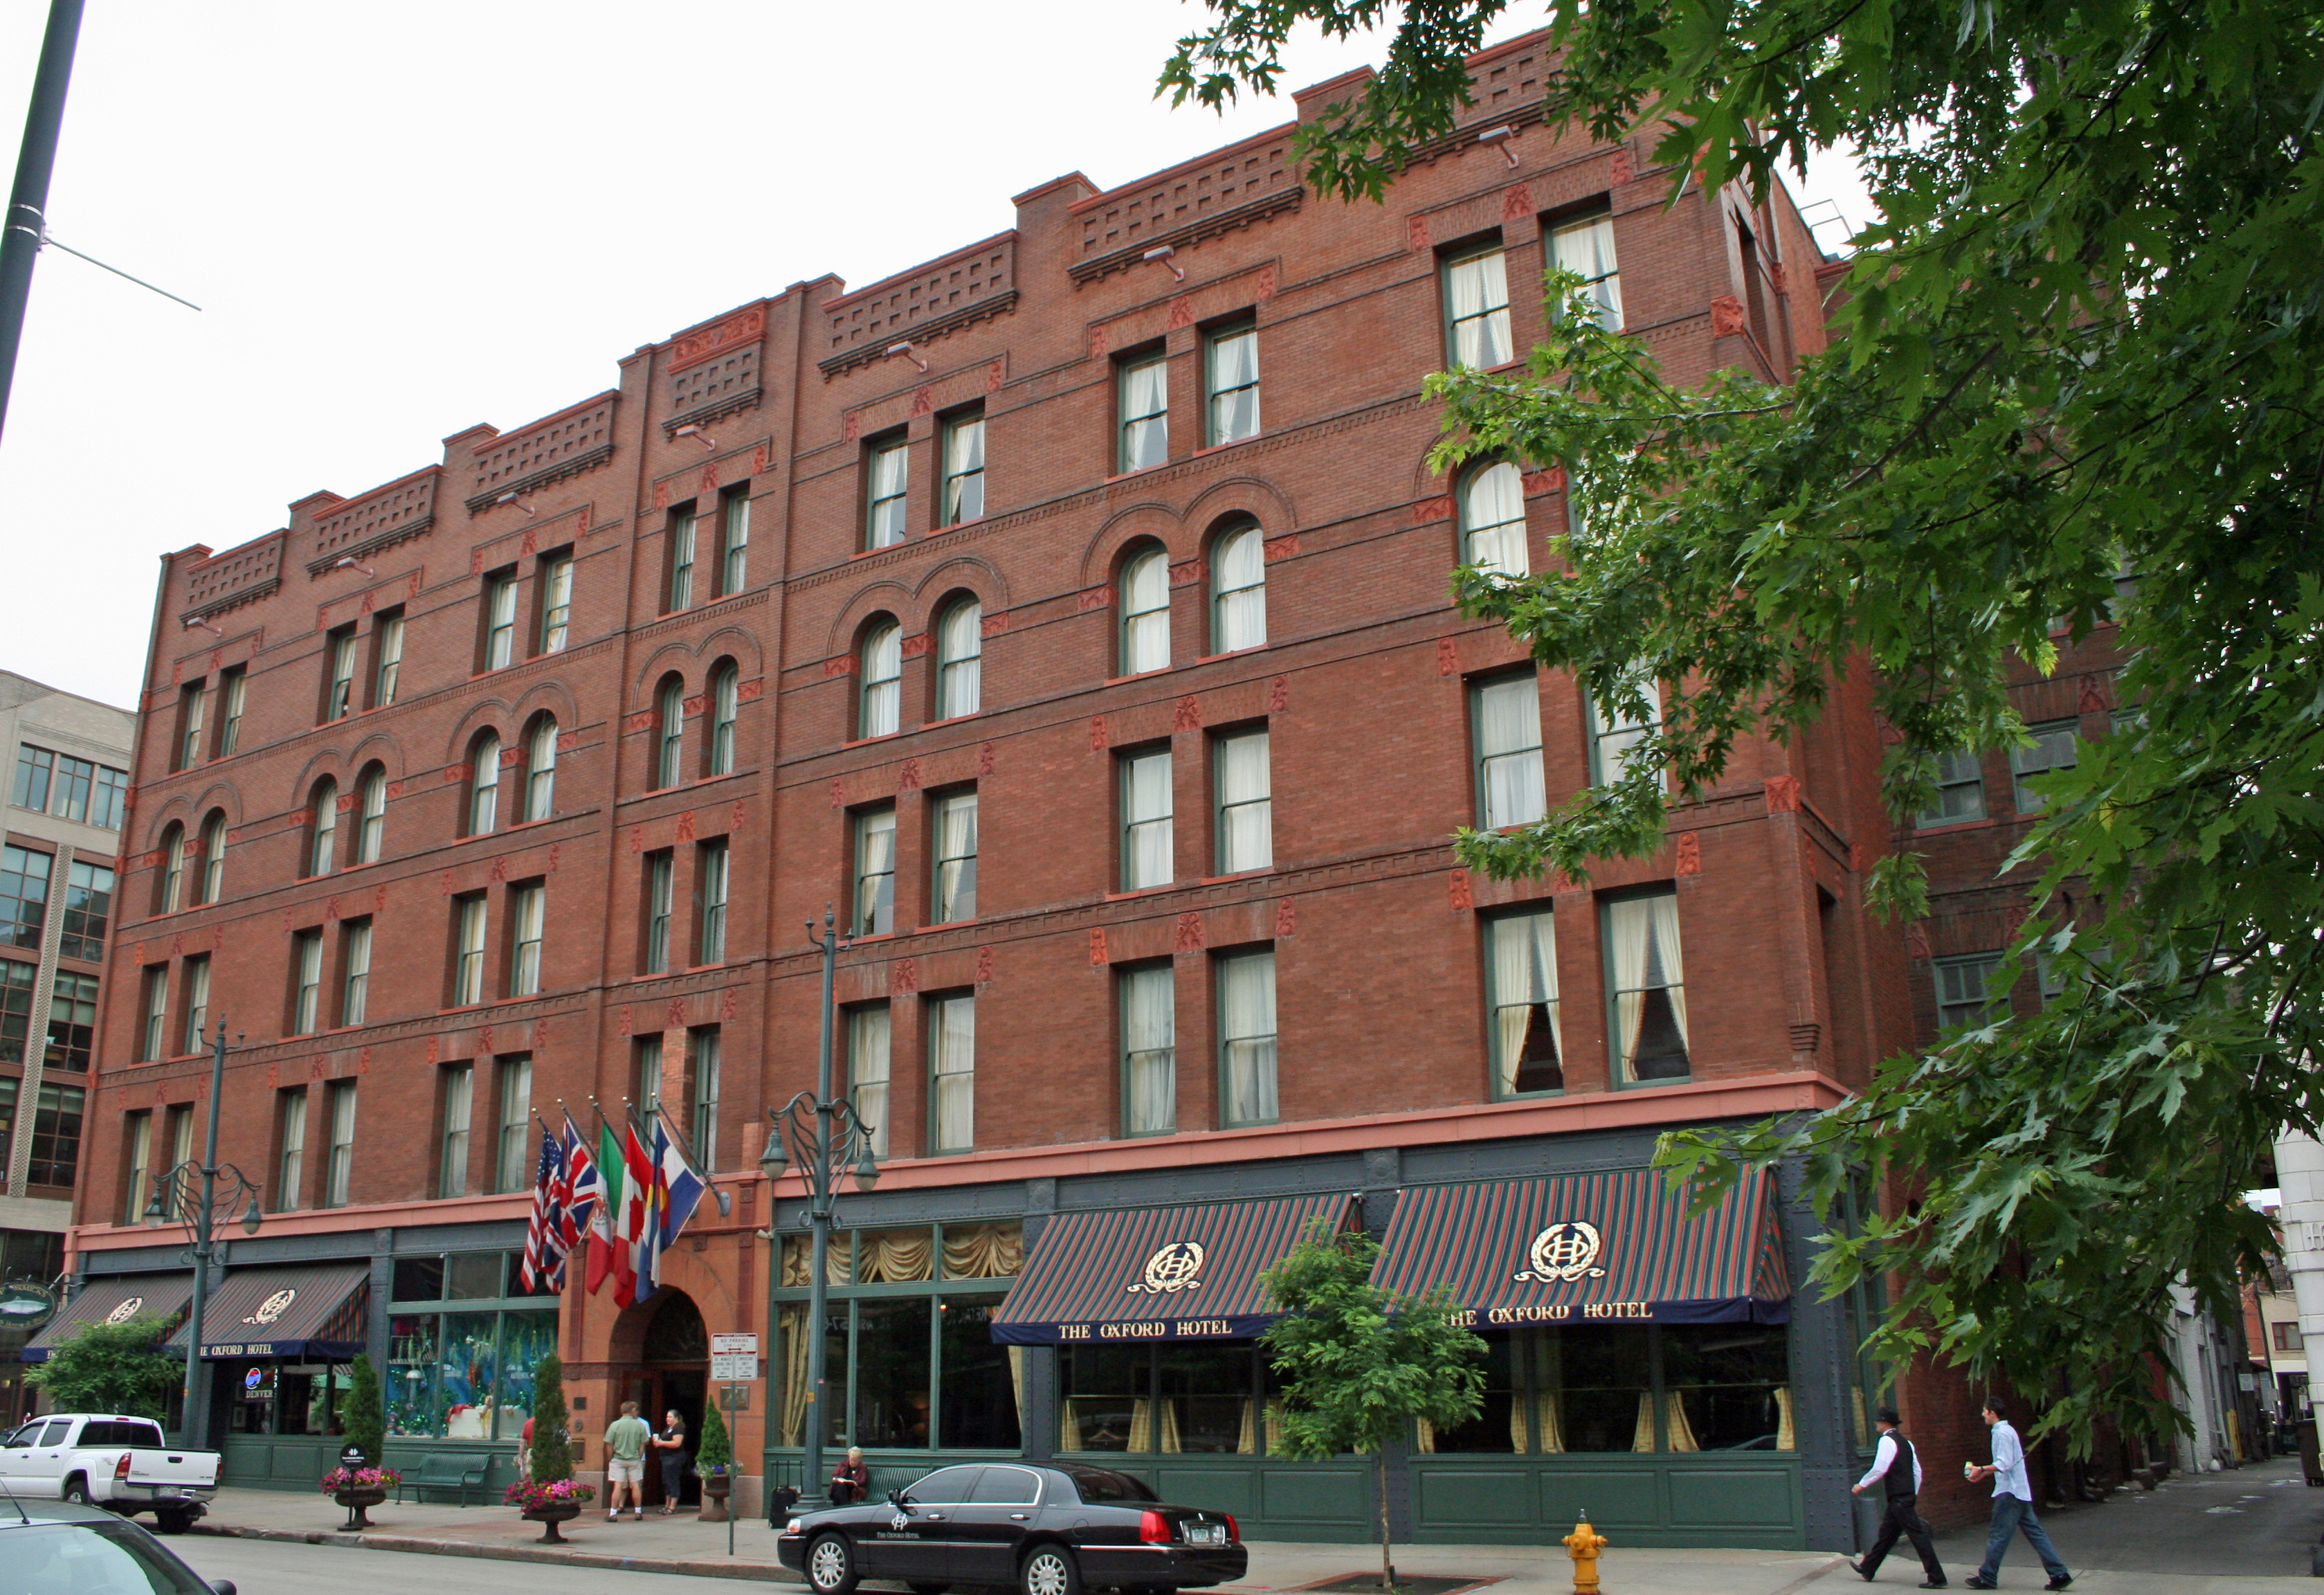 Old Hotels: The Oxford in Denver